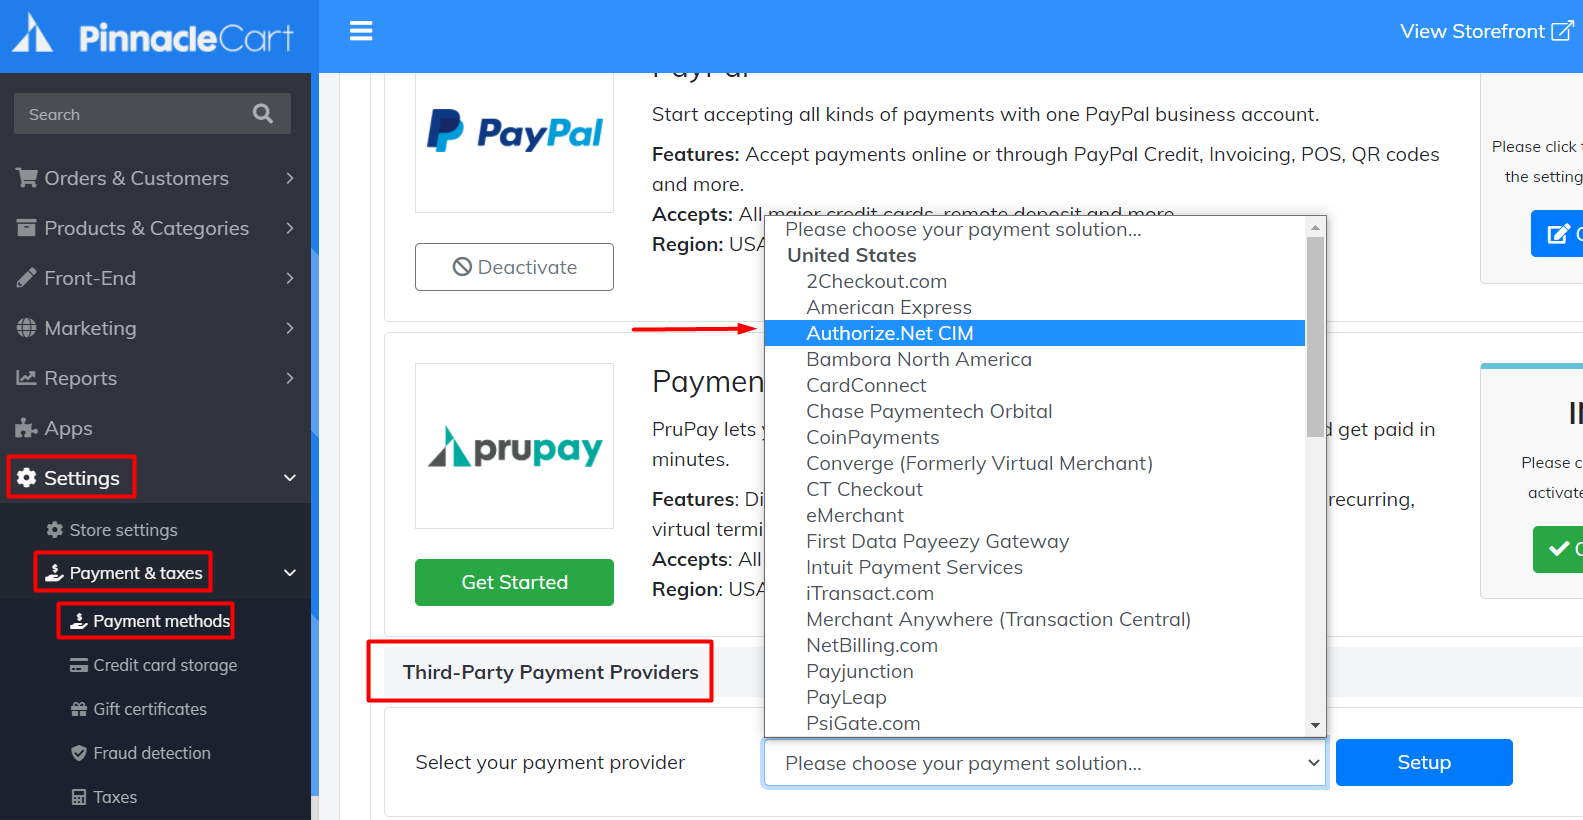 select payment provider